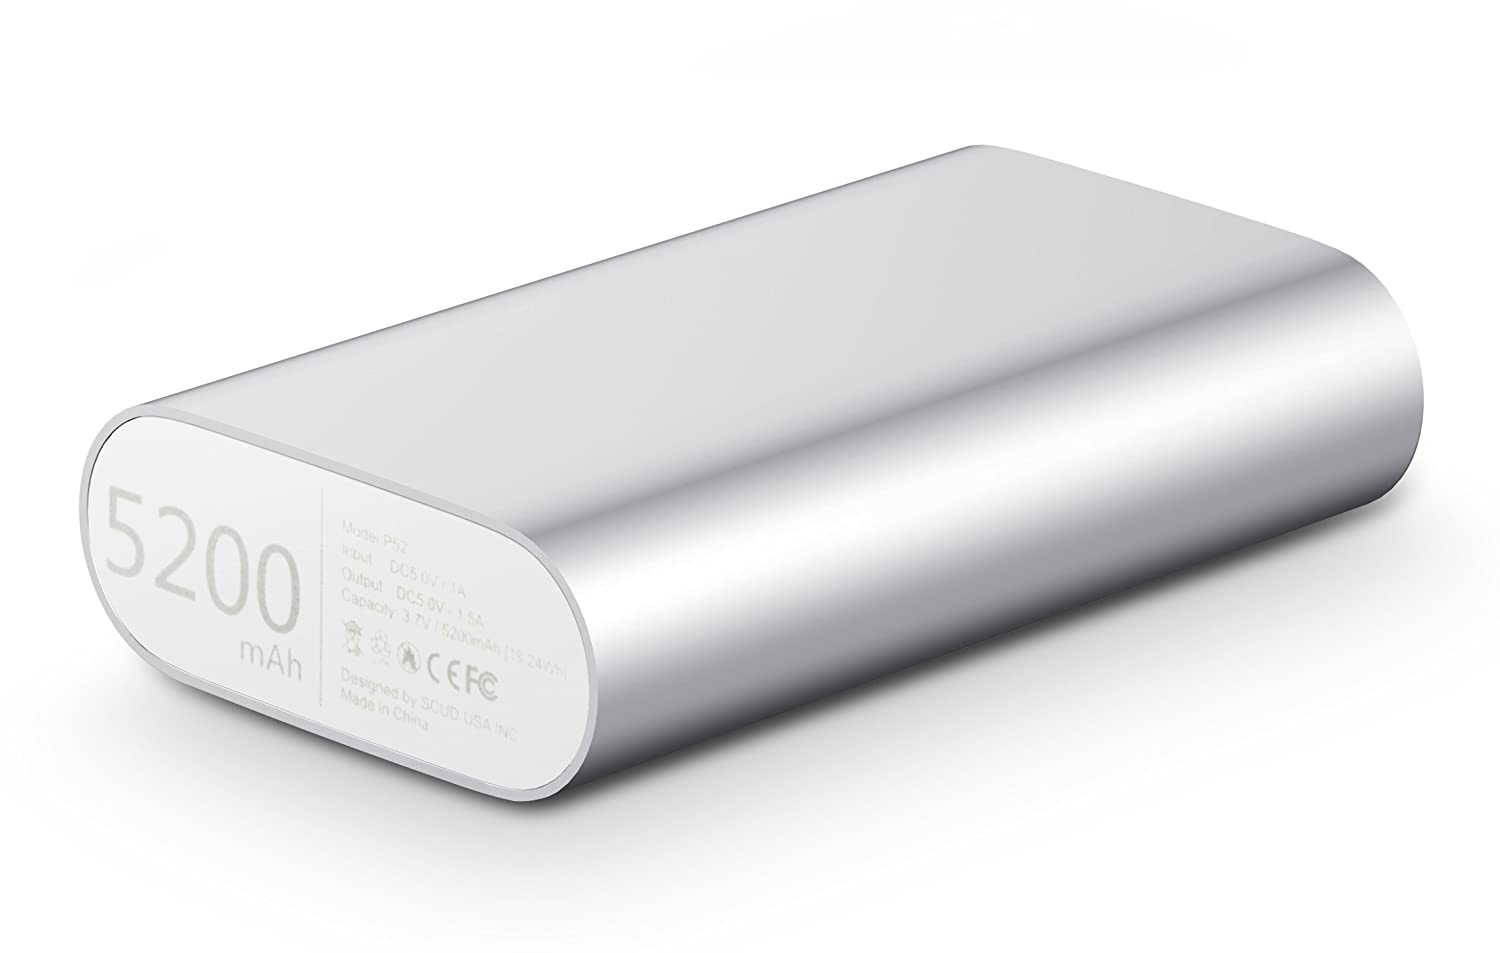 Fremo® P52 5200mAh Power Bank External Battery Charger For iPhone 5s 5c 5,iPad Air mini, Galaxy S5 S4, Note 3 2,Galaxy Tab, Nexus, HTC One,One 2 , PS Vita and more-Silver